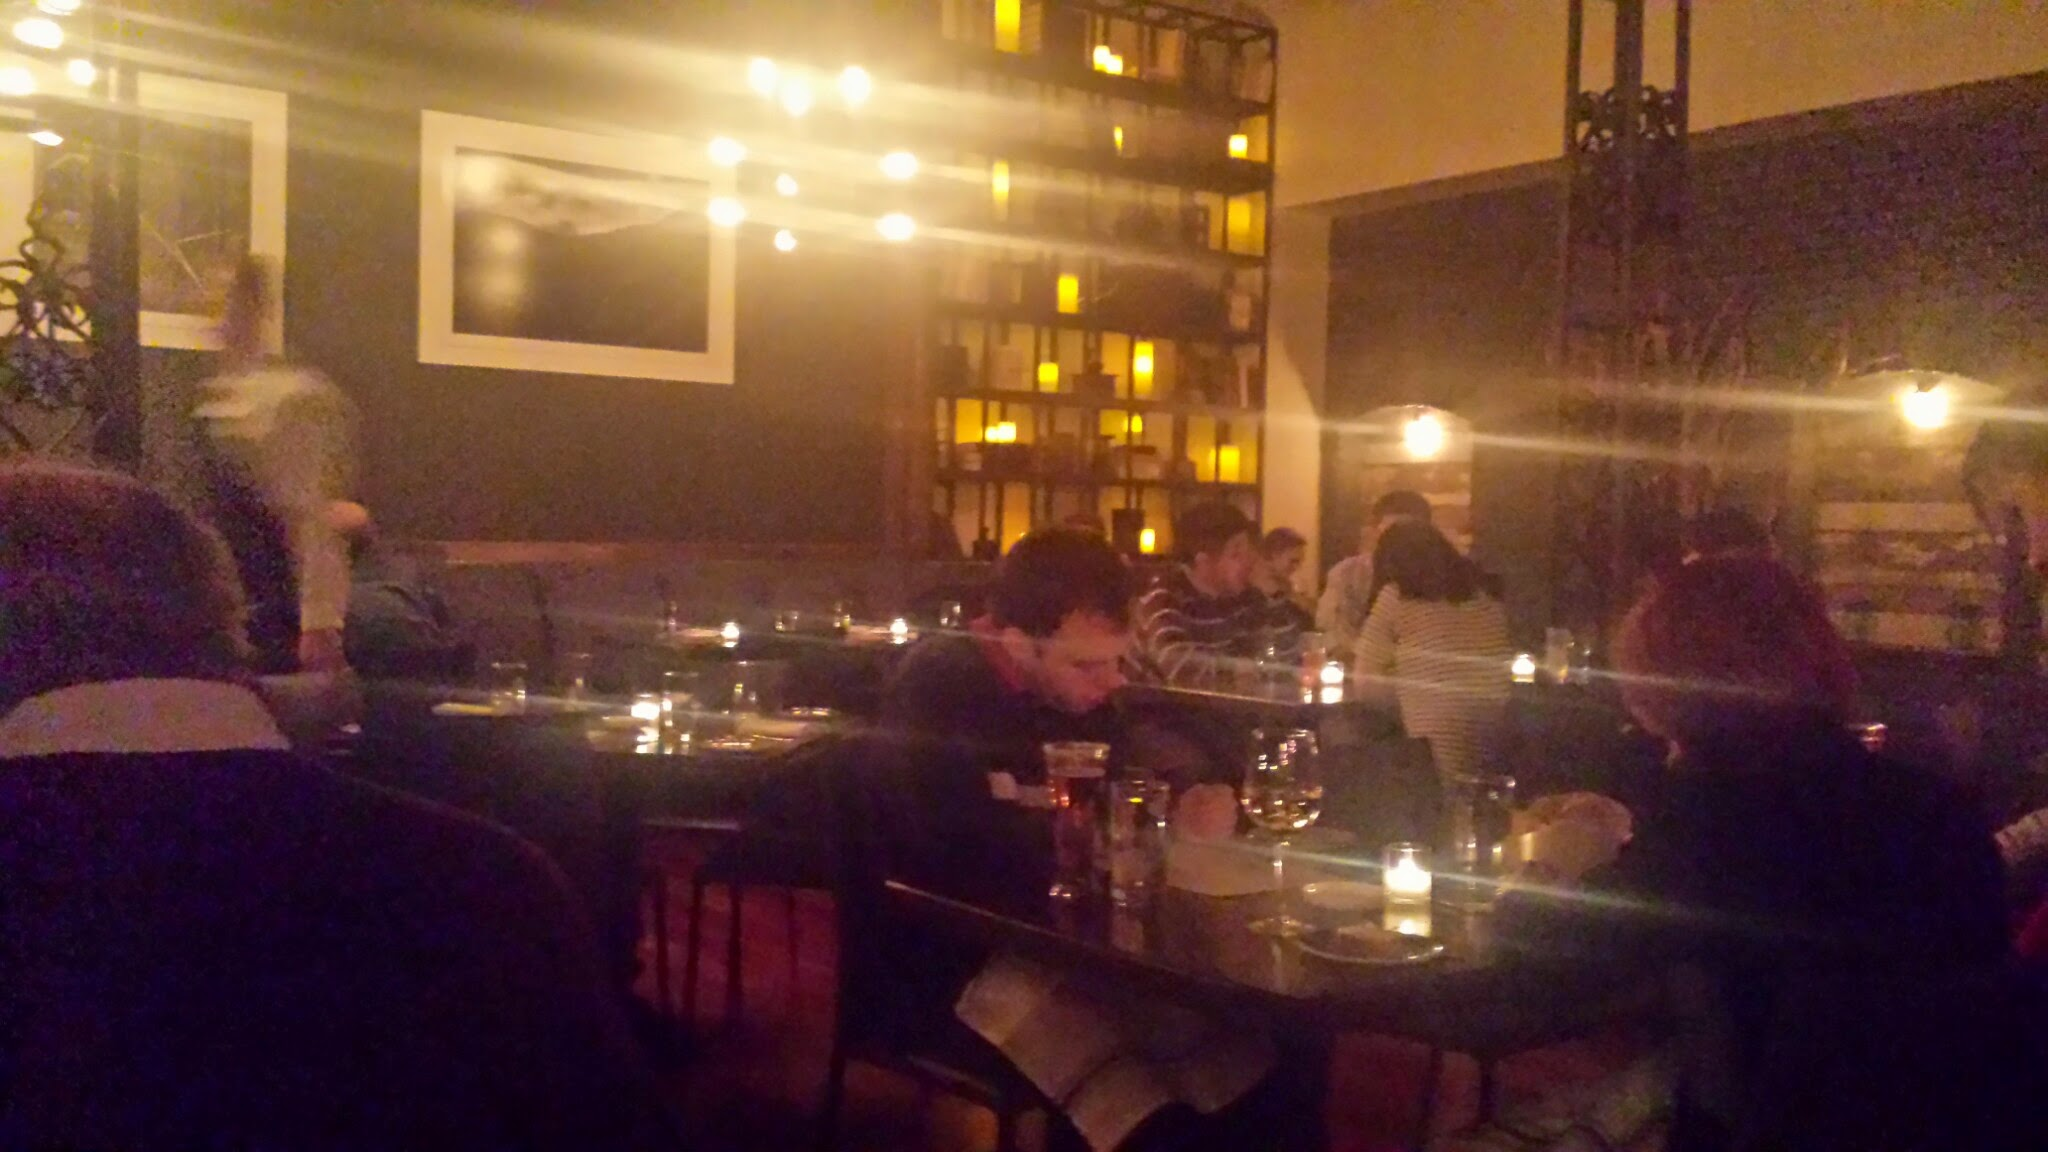 The Milling Room – Fabulous Pasta, but Will I Return?